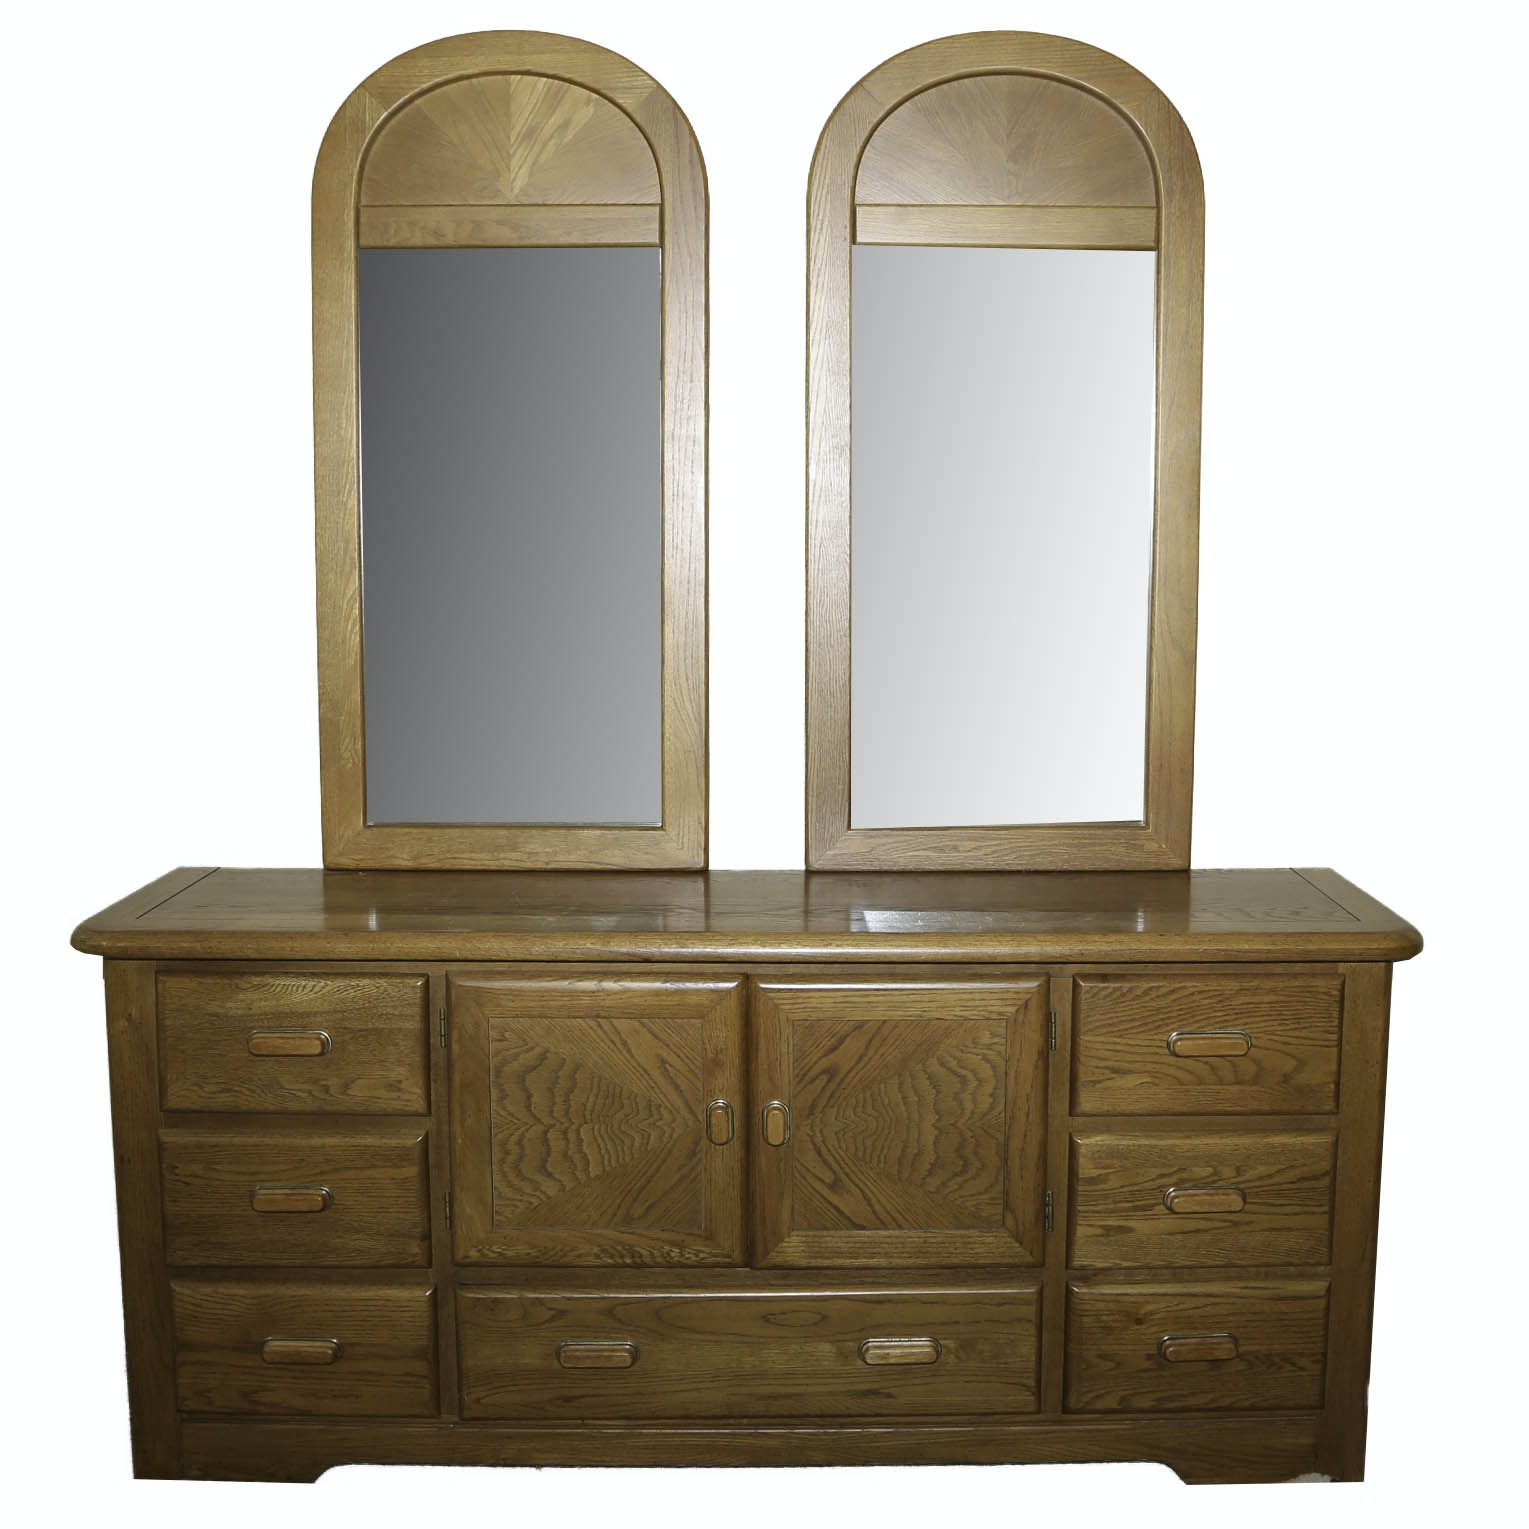 Vintage Dresser with Double Mirrors